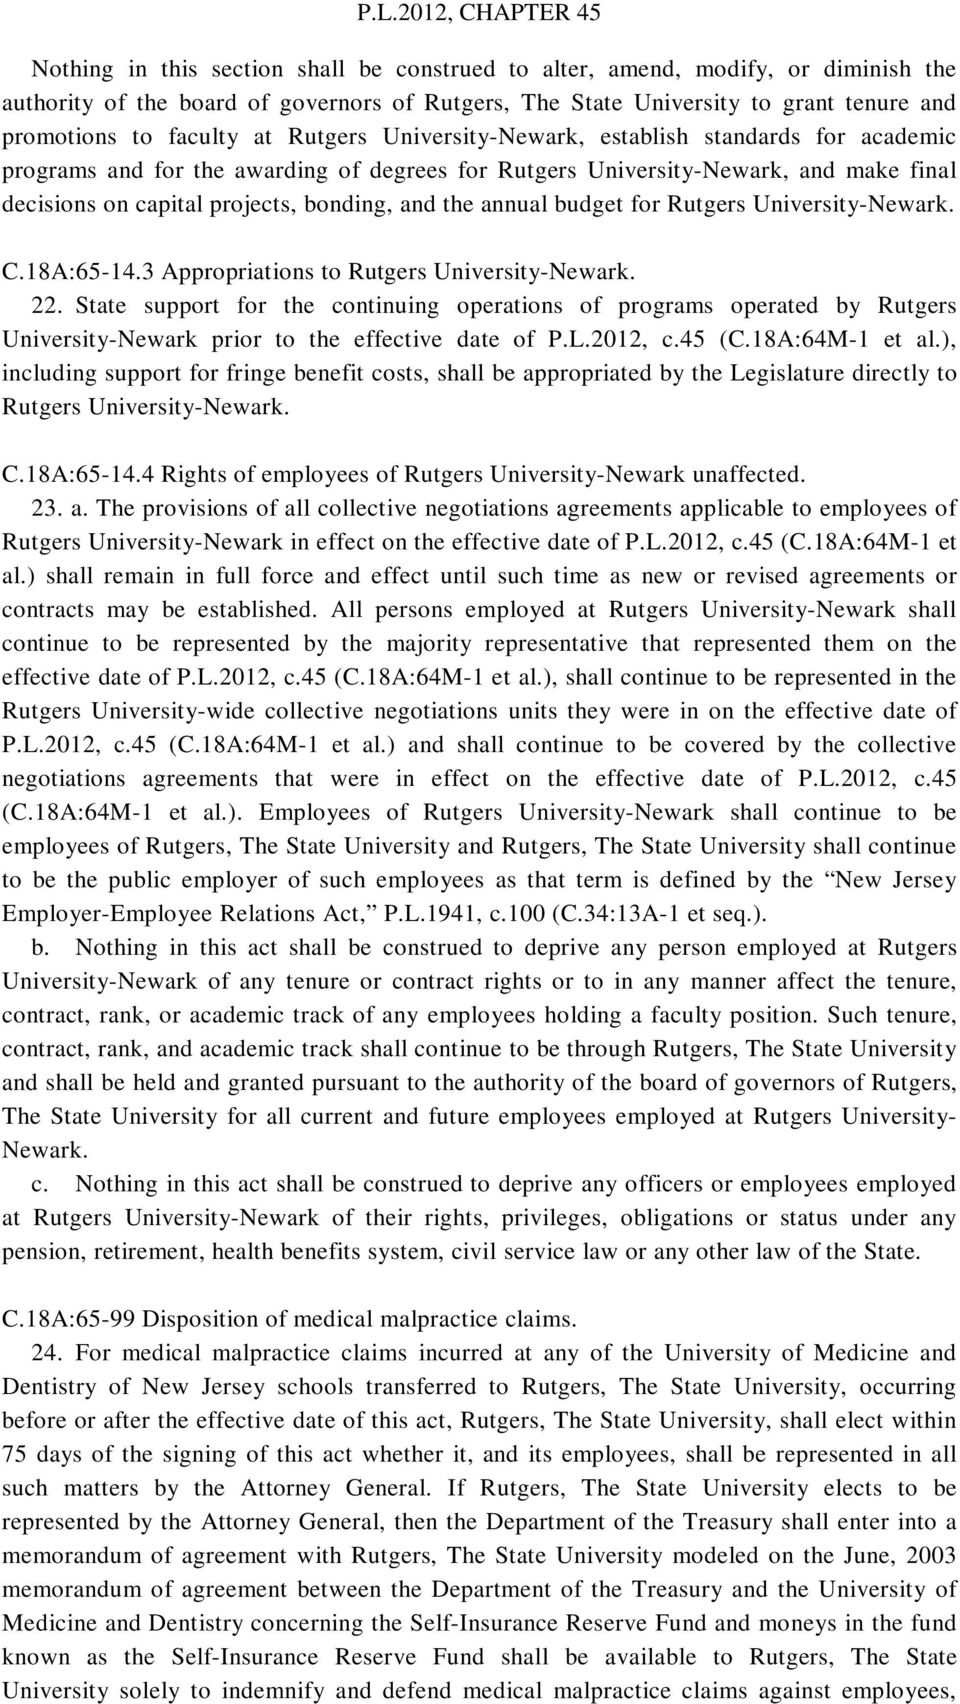 annual budget for Rutgers University-Newark. C.18A:65-14.3 Appropriations to Rutgers University-Newark. 22.